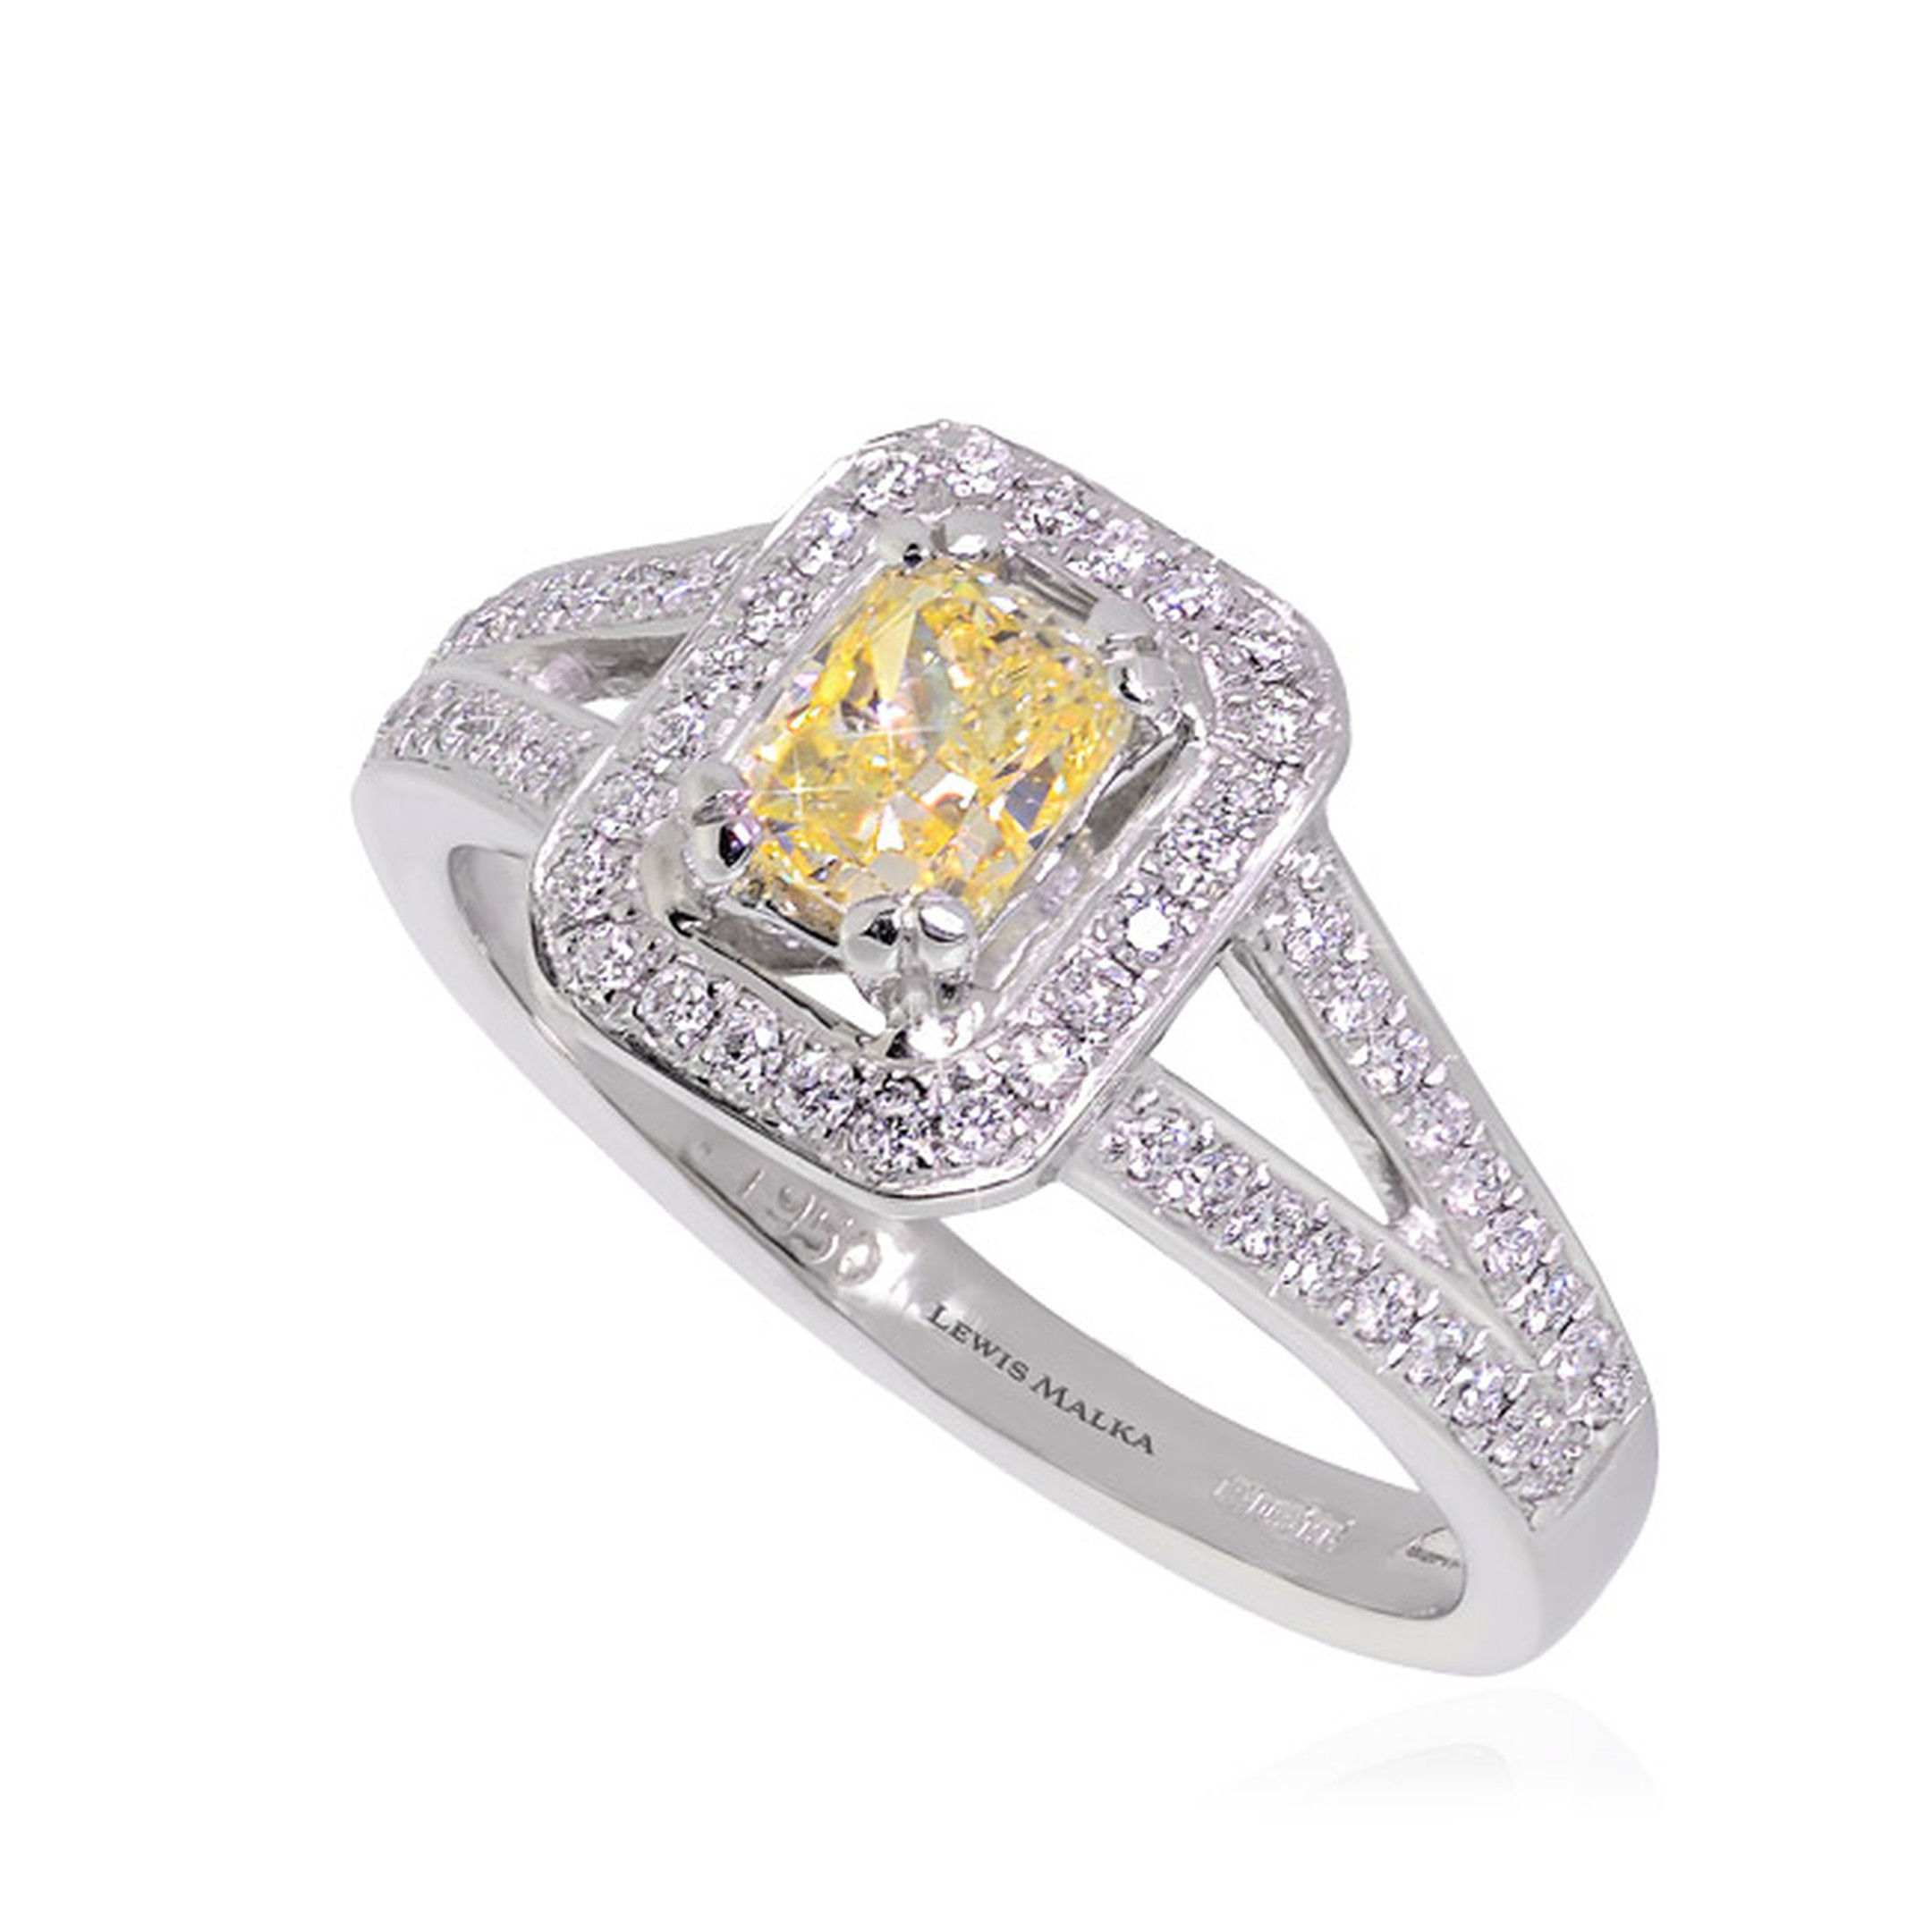 Lewis-Malka-Yellow-Diamond-Ring-Main